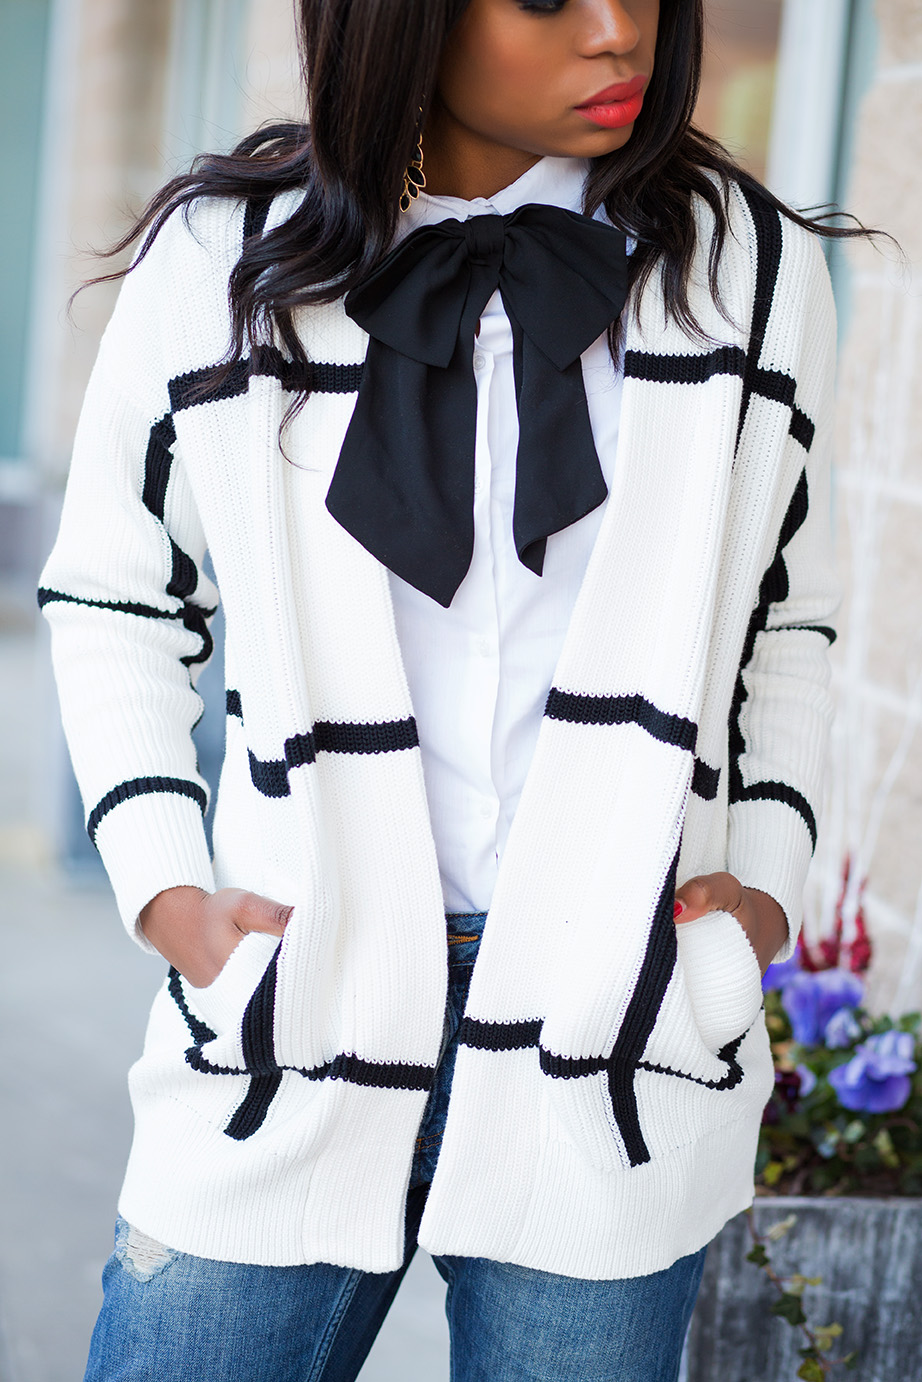 black and white, www.jadore-fashion.com